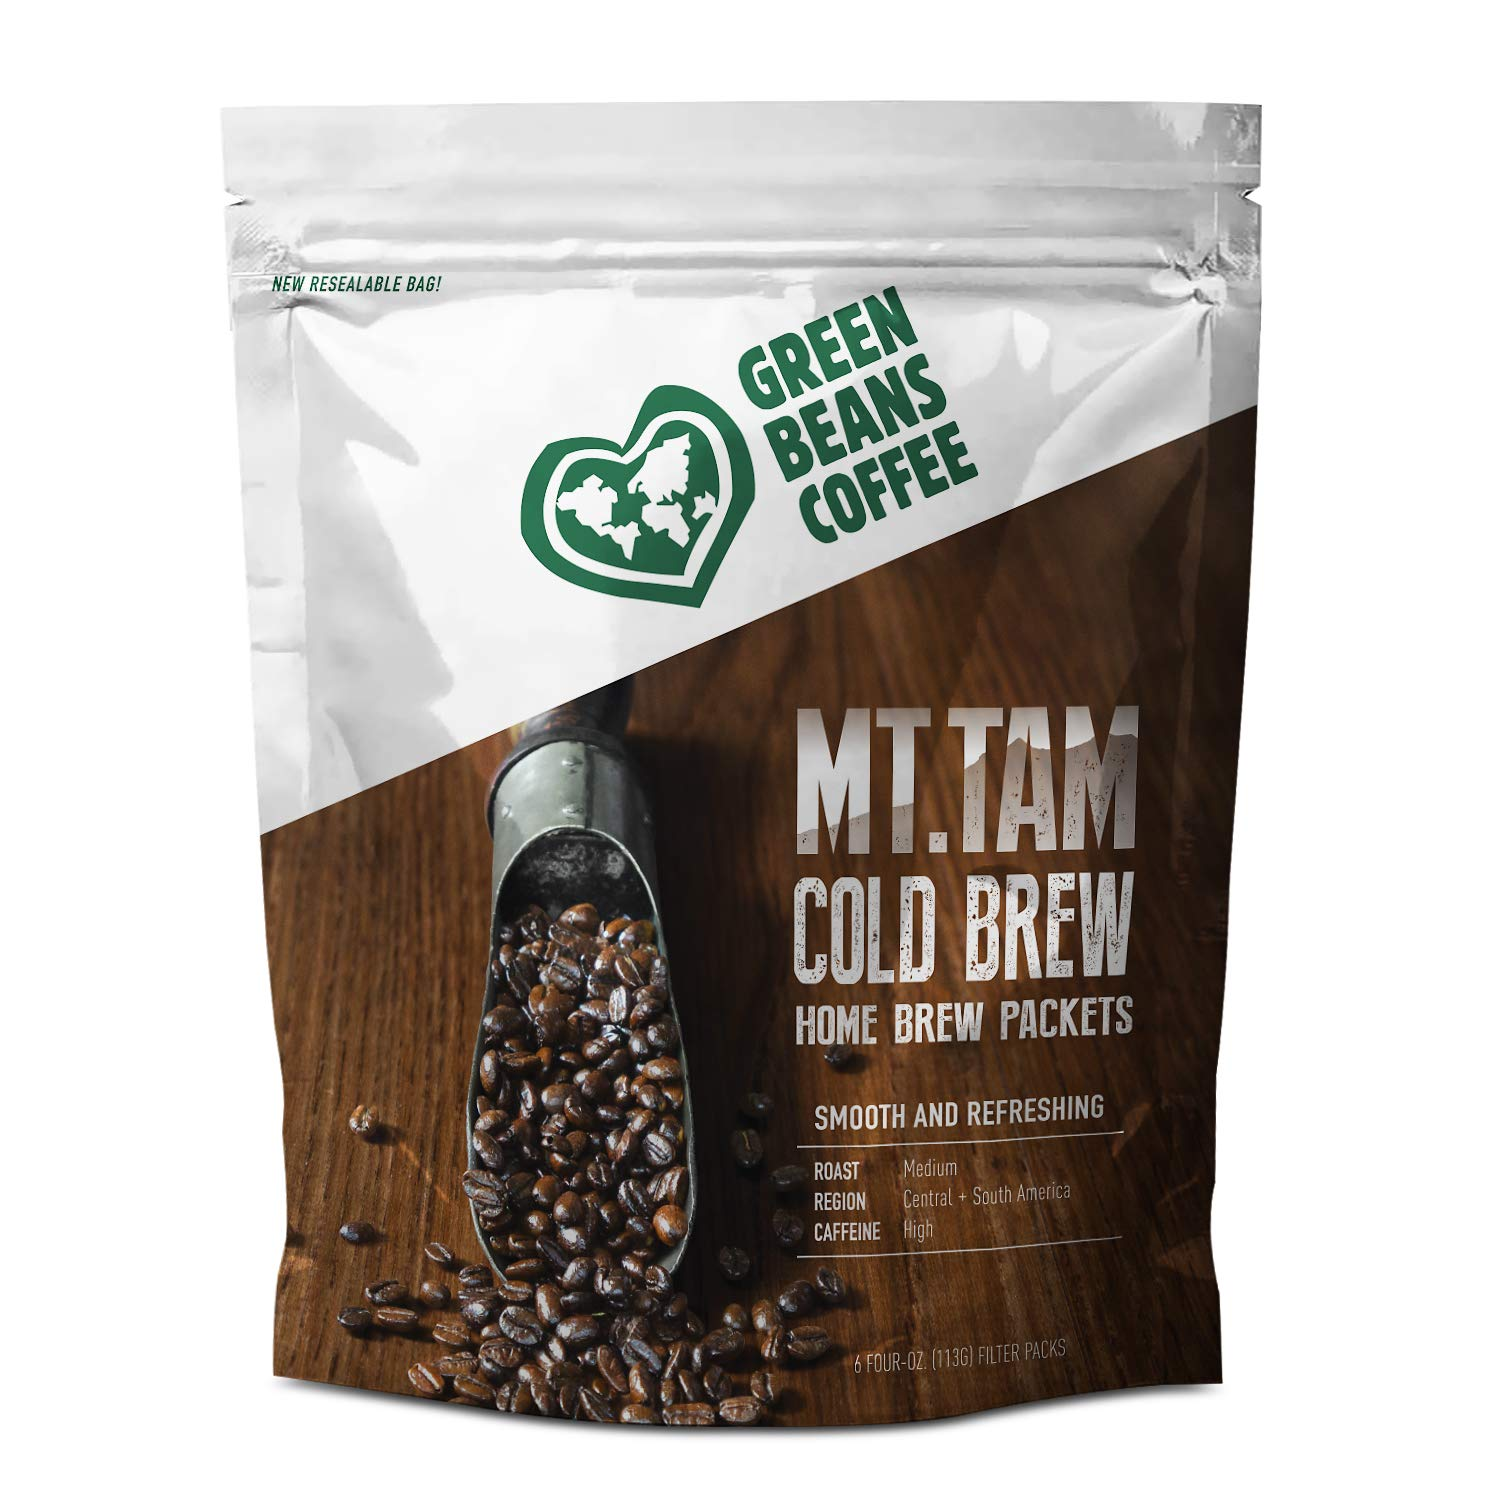 Green Beans Cold Brew Coffee Easy Home Brew Packets - 6 count 4oz Filter Packs by Green Beans Coffee